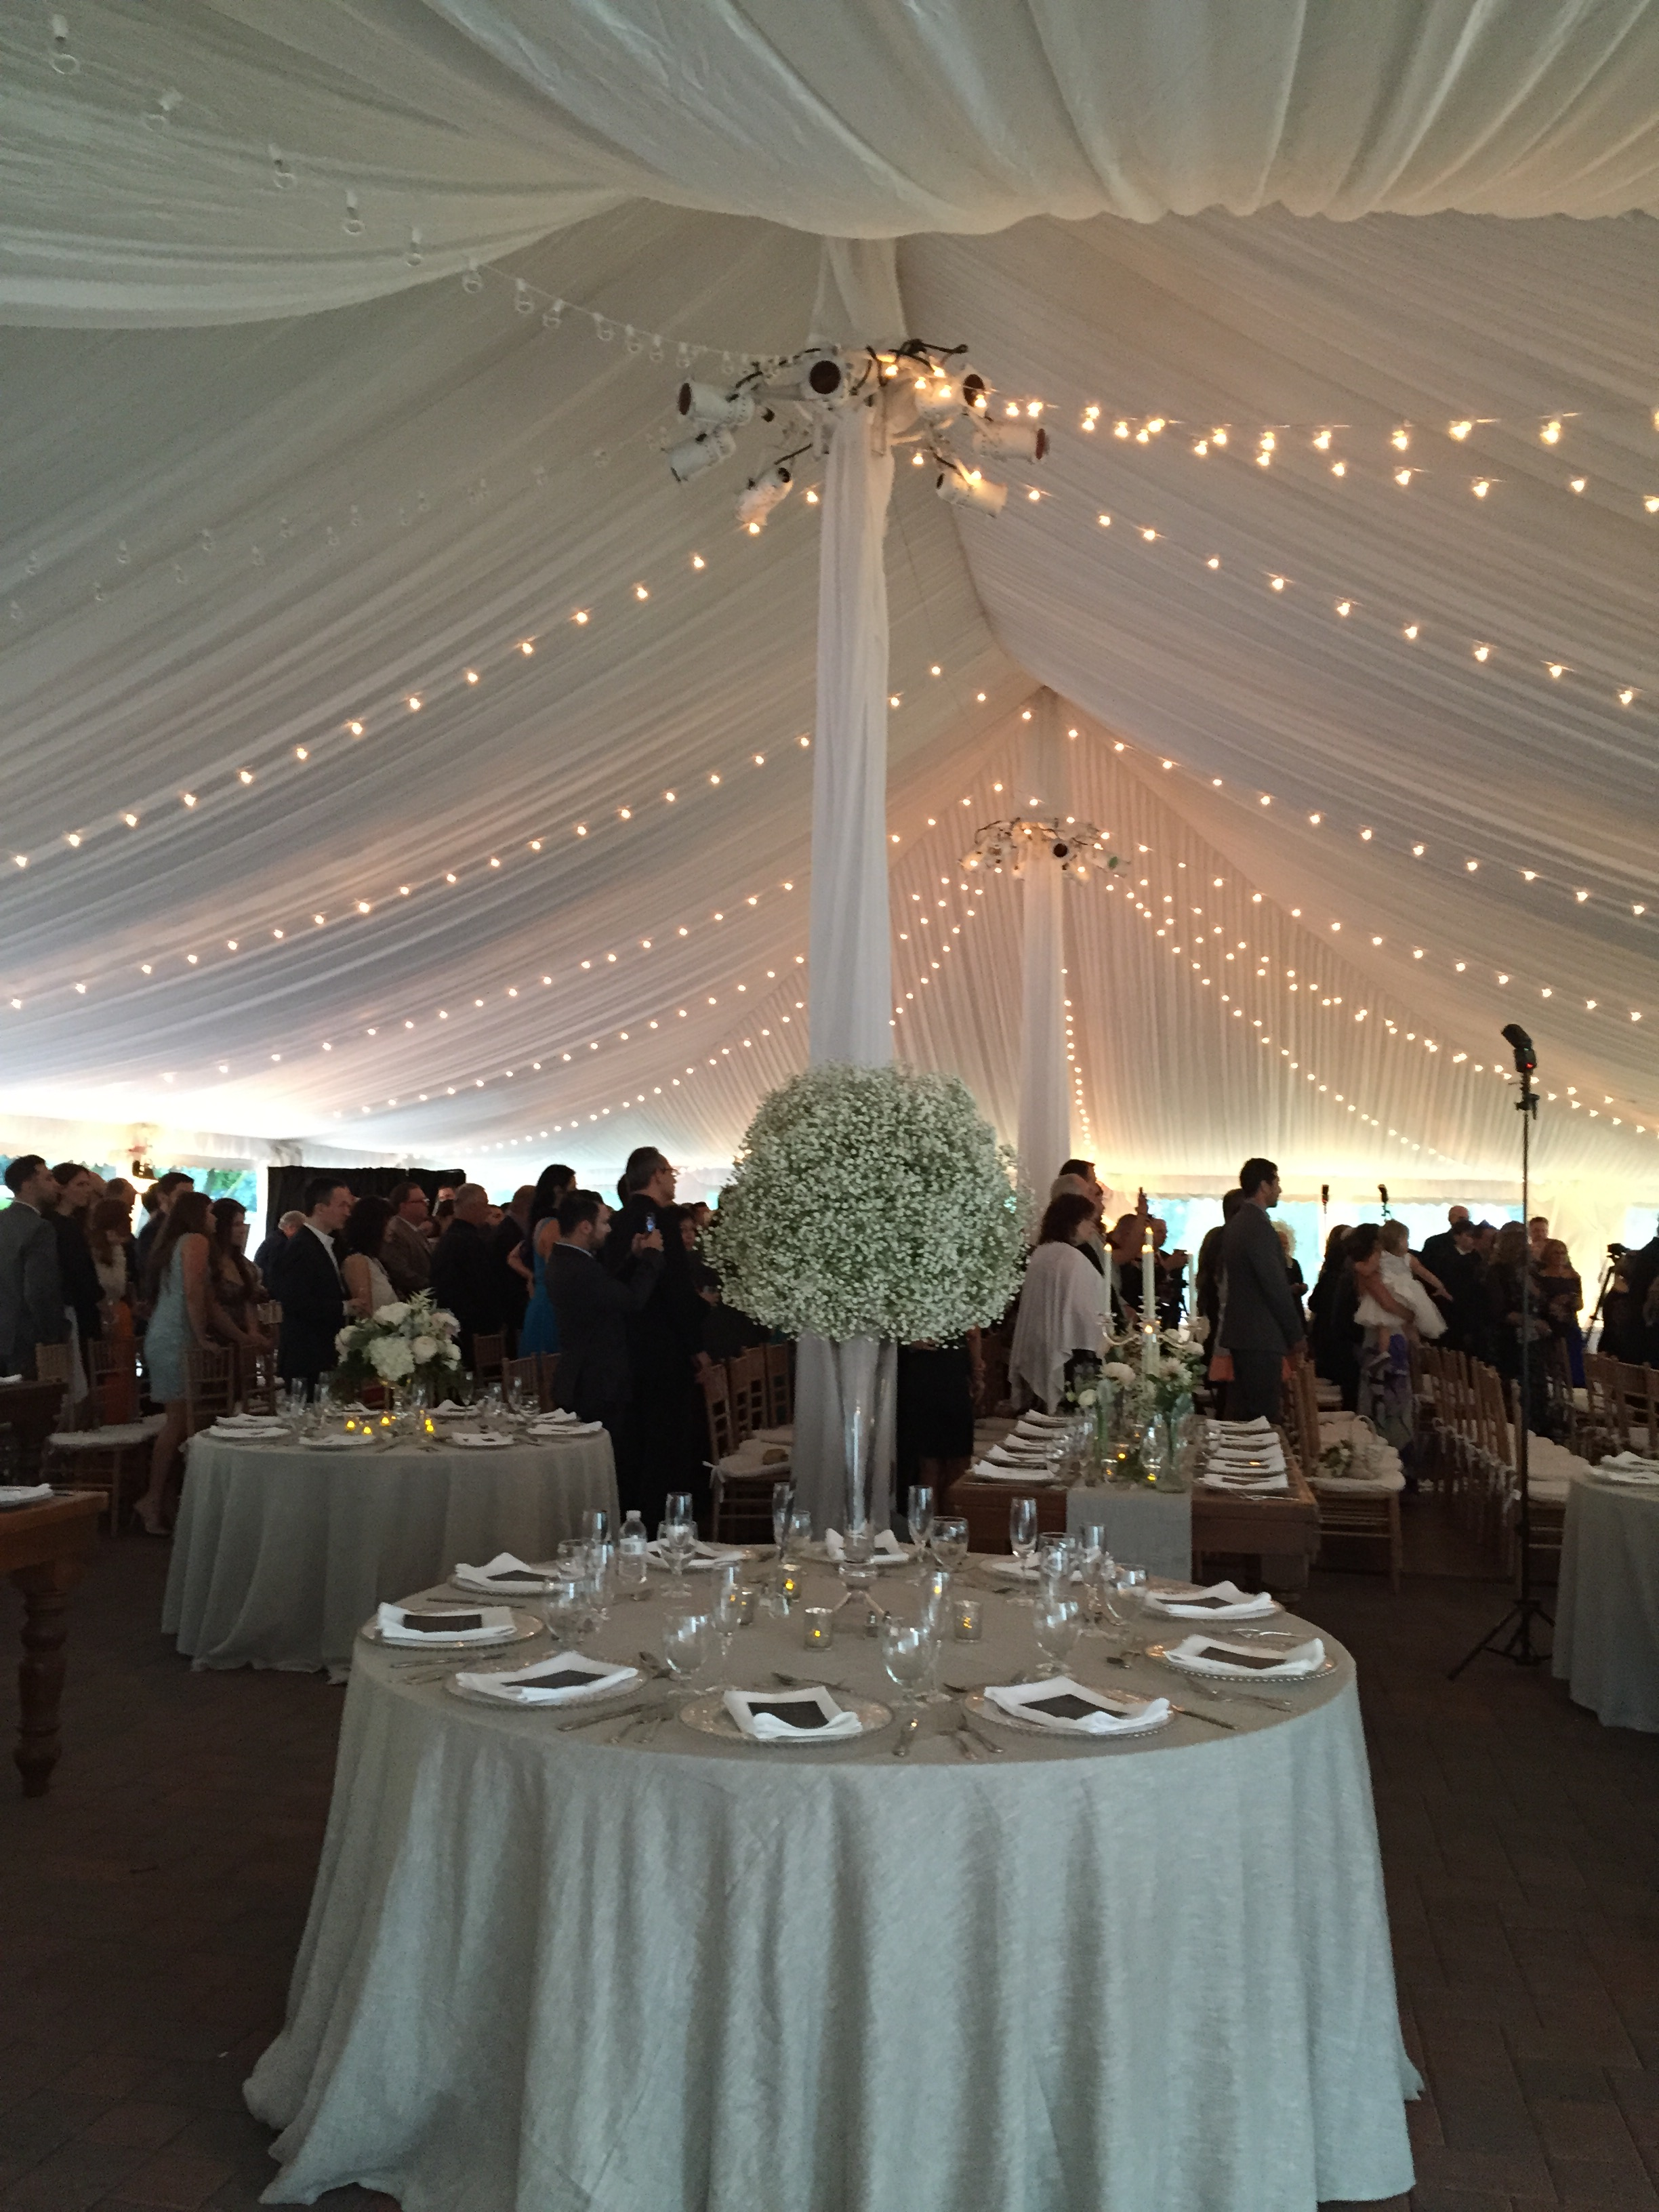 Quinn-Martinez Wedding Tent 2.JPG